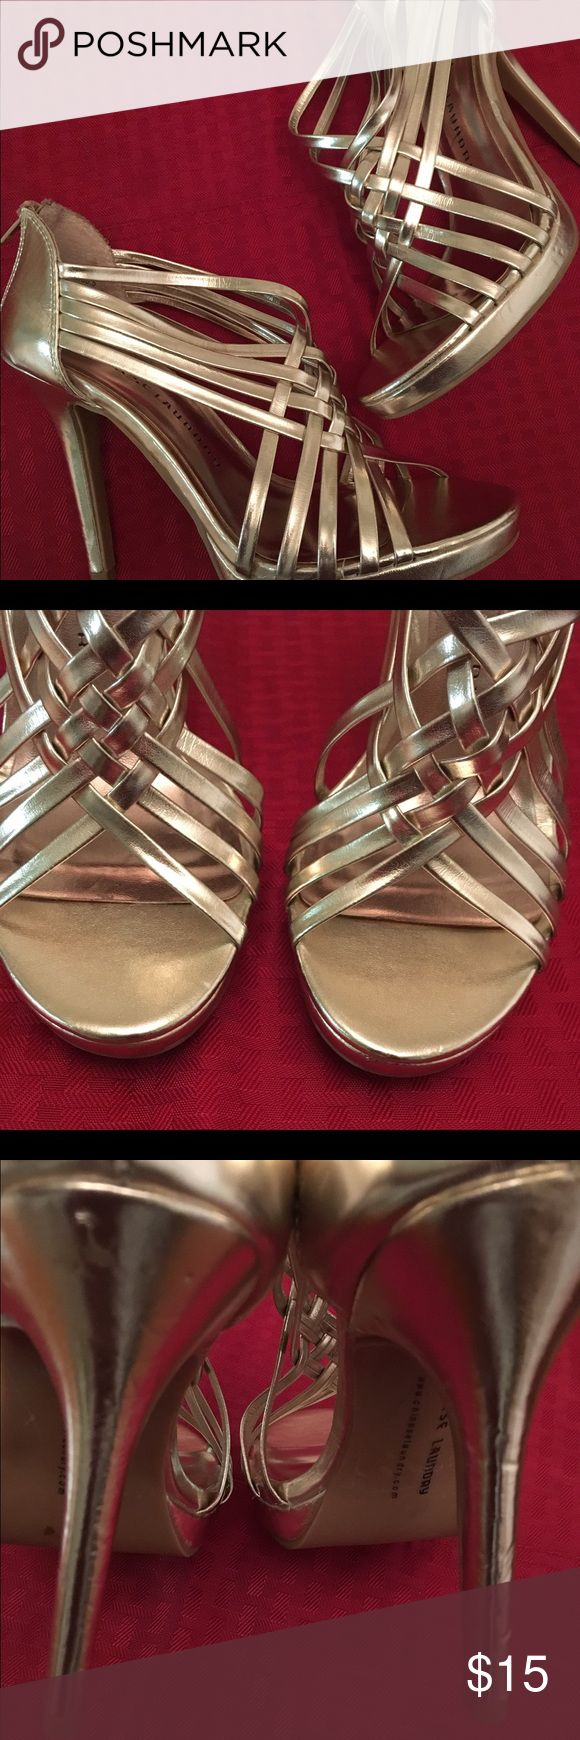 """Chinese Laundry gold strappy heels Chinese Laundry """"Fiesta"""" pale gold metallic strappy heels / sandals. Zip closure in back. 4 1/2 inch heel. Super awesome! Have been worn but still have lots of life left in them. ***please note scuffs, original box not included. Smoke free and pet free environment. Chinese Laundry Shoes Heels"""